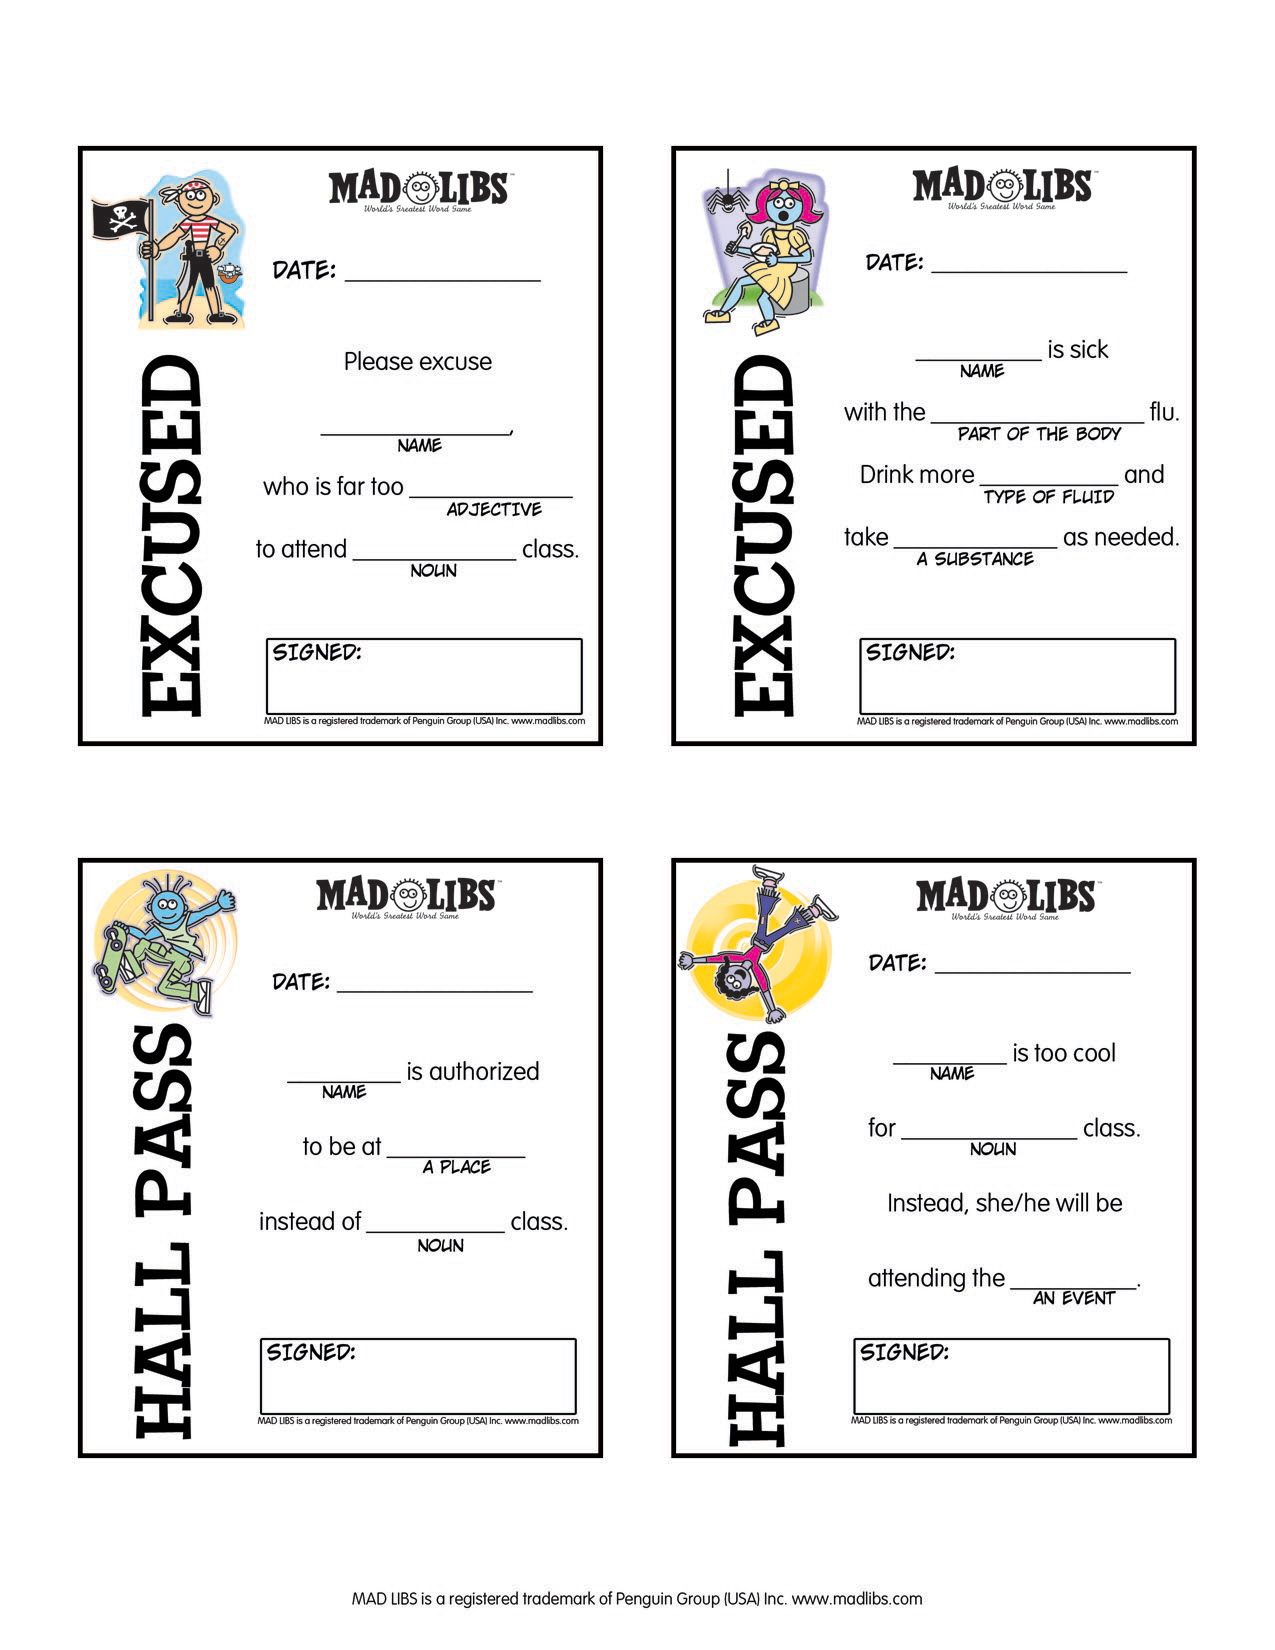 Printables – Mad Libs - Free Printable Hall Pass Template